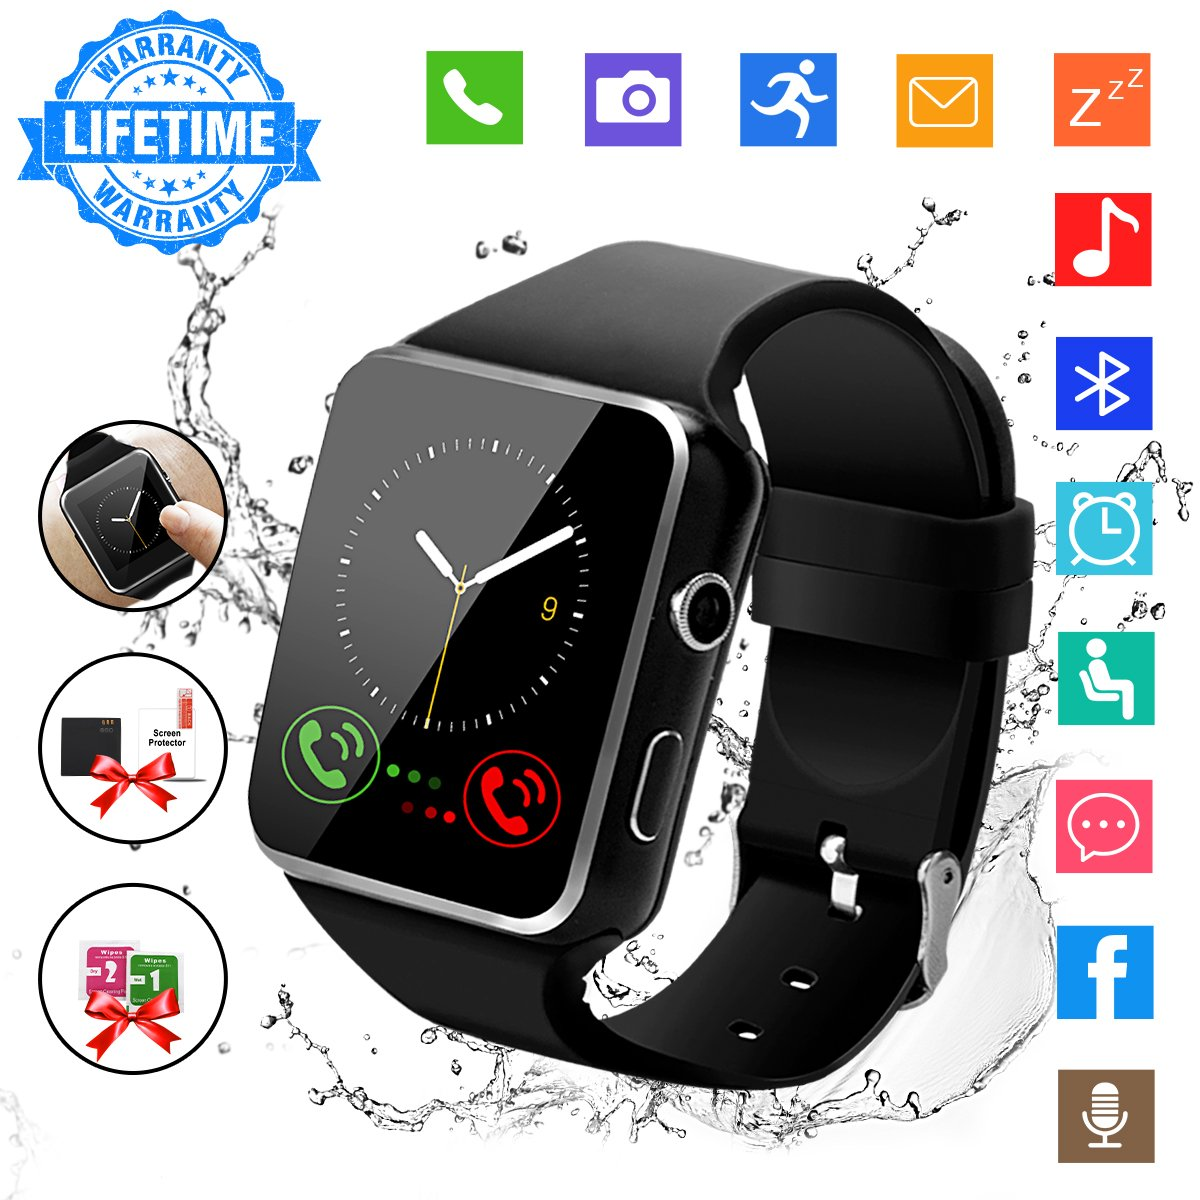 Smart Watch,Bluetooth Smart Watch Touch Screen Smartwatch Sport Smart Fitness Tracker Wrist Watch with SIM Card Slot Camera Pedometer for iOS iPhone Android Samsung Smartphones for Men Women Black